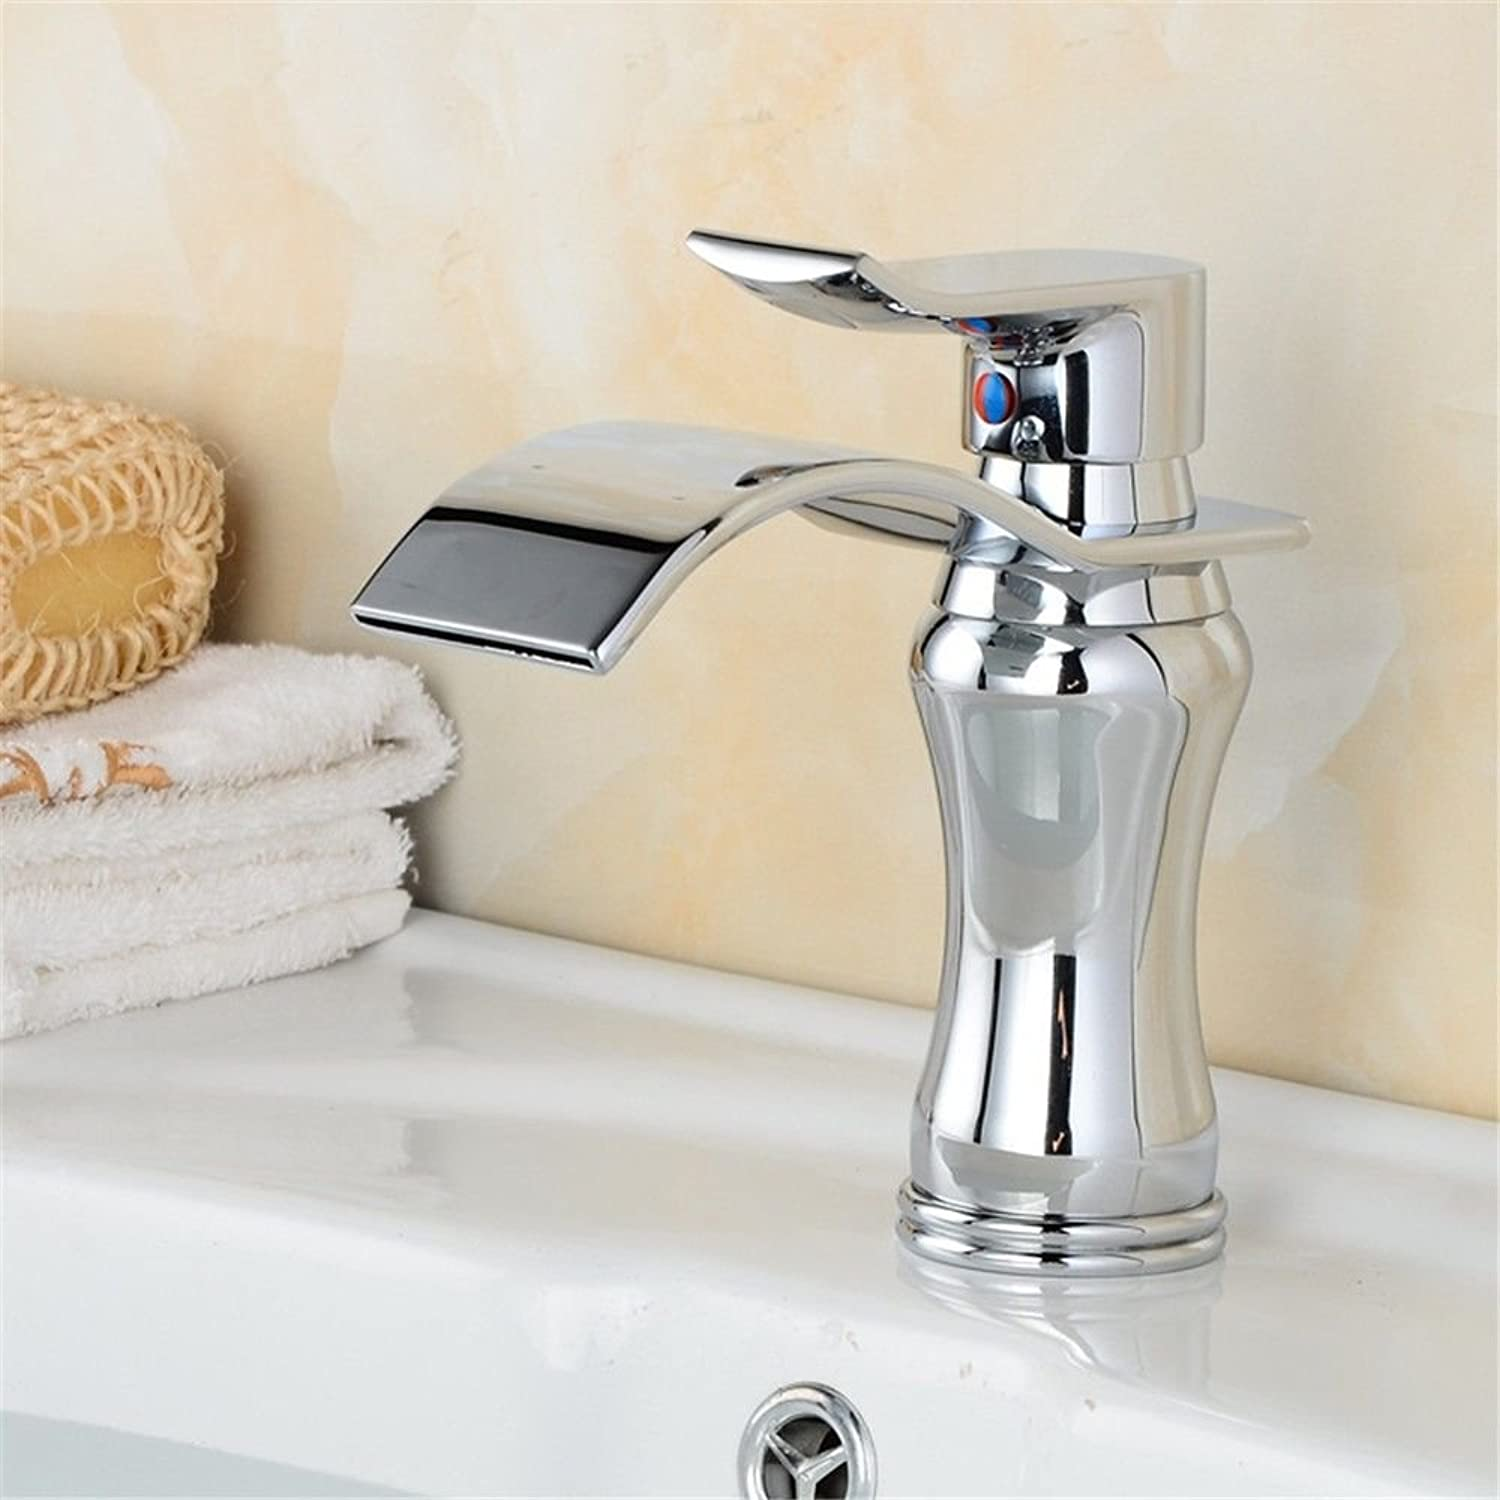 LHbox Basin Mixer Tap Bathroom Sink Faucet Wash Basin Mixer Taps full copper hot and cold basin waterfall faucet bathroom vanity table basin brushed the high, low, chrome plated